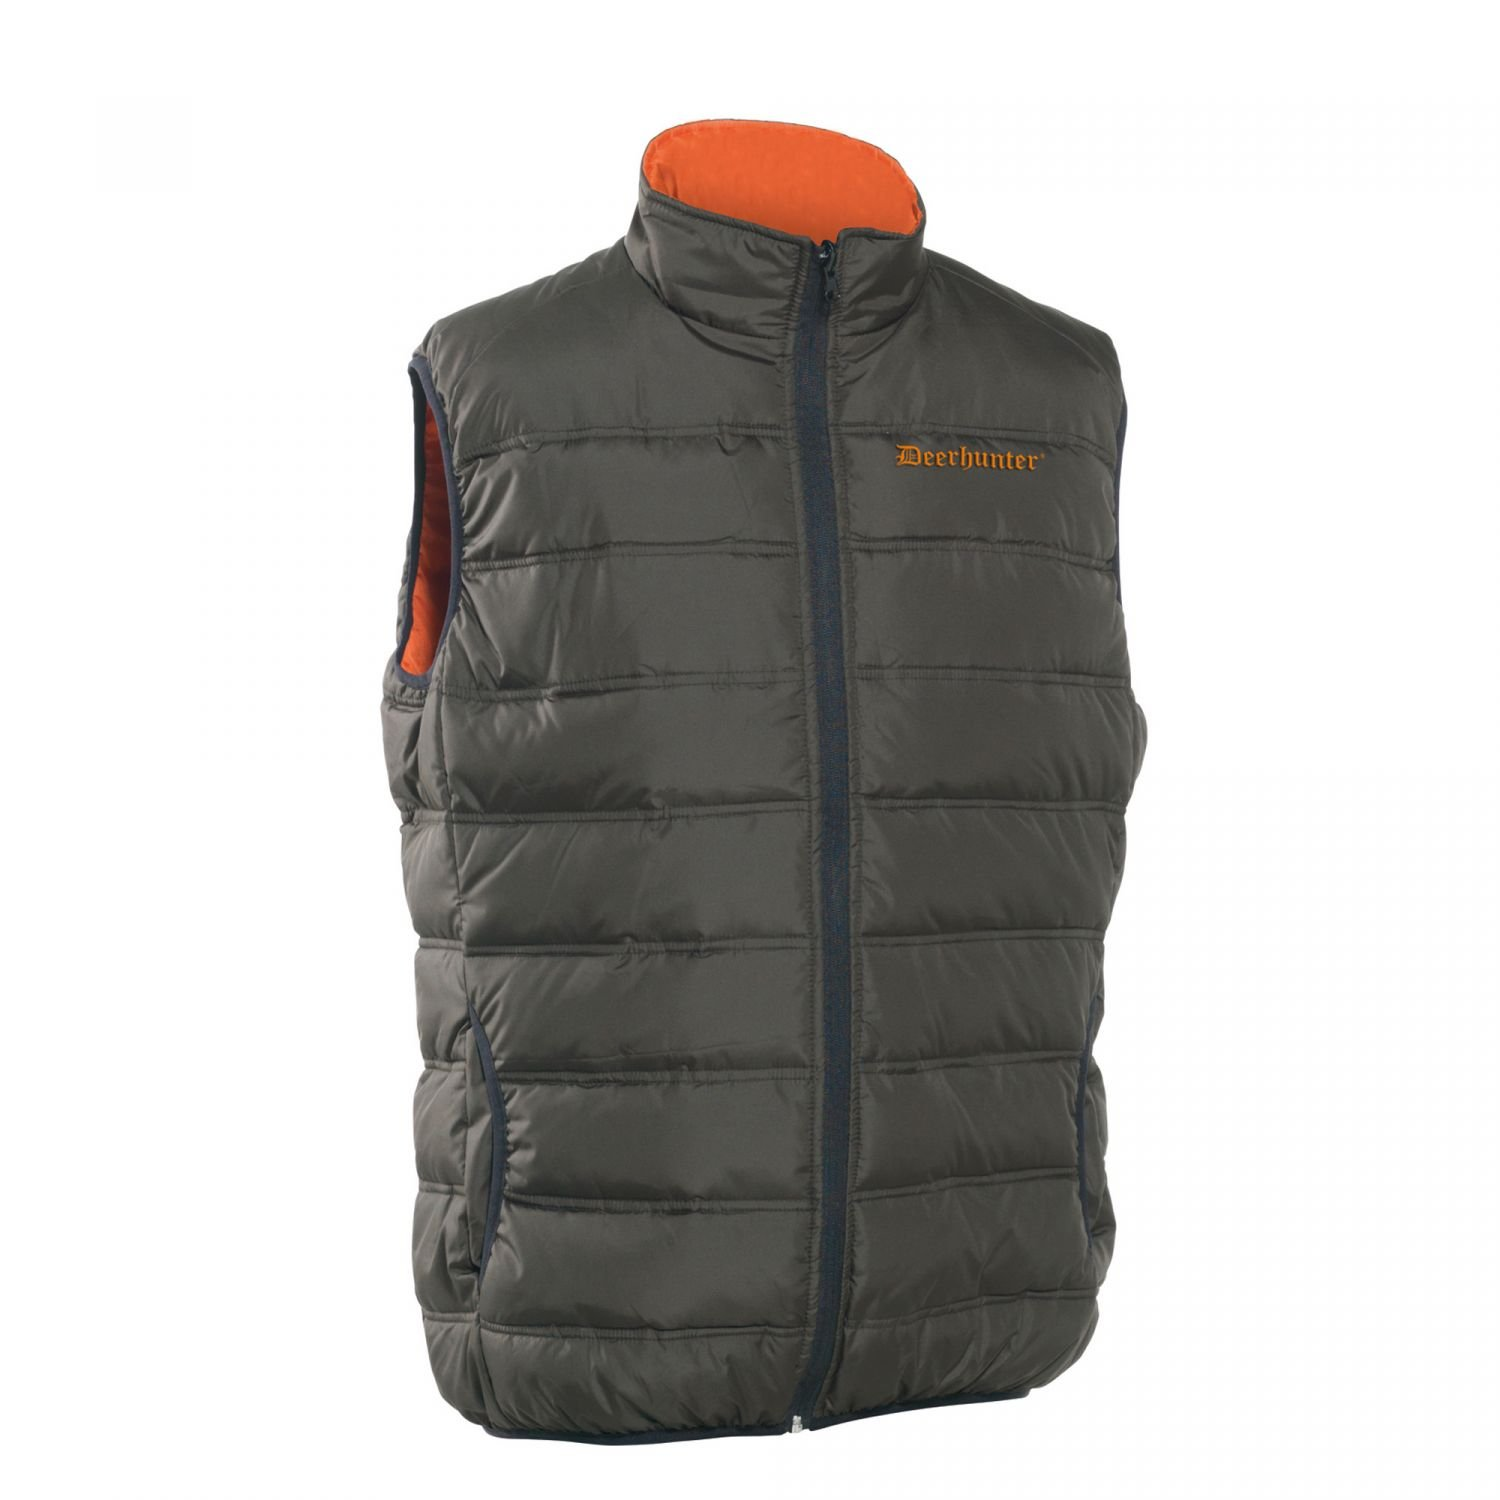 Chaleco Reversible Deerhunter ATTACK REVERSIBLE WAISTCOAT 4753